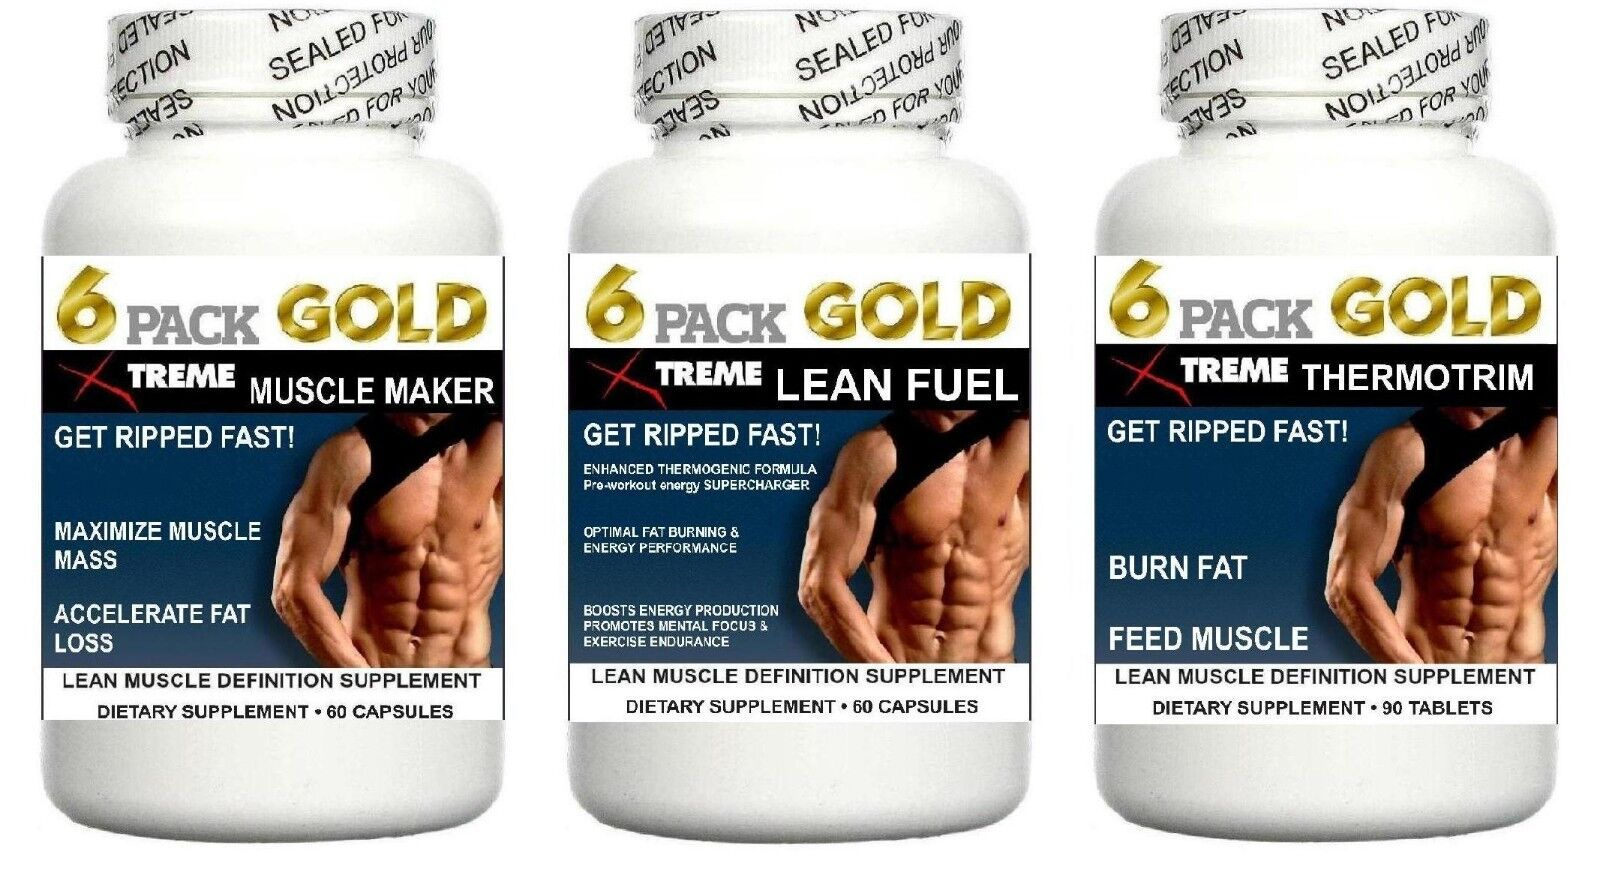 Lean Muscle Growth Pills Growth Muscle Builder Abs Cortisol Burn Fat Loss Training Energy Aid 8e1fe6